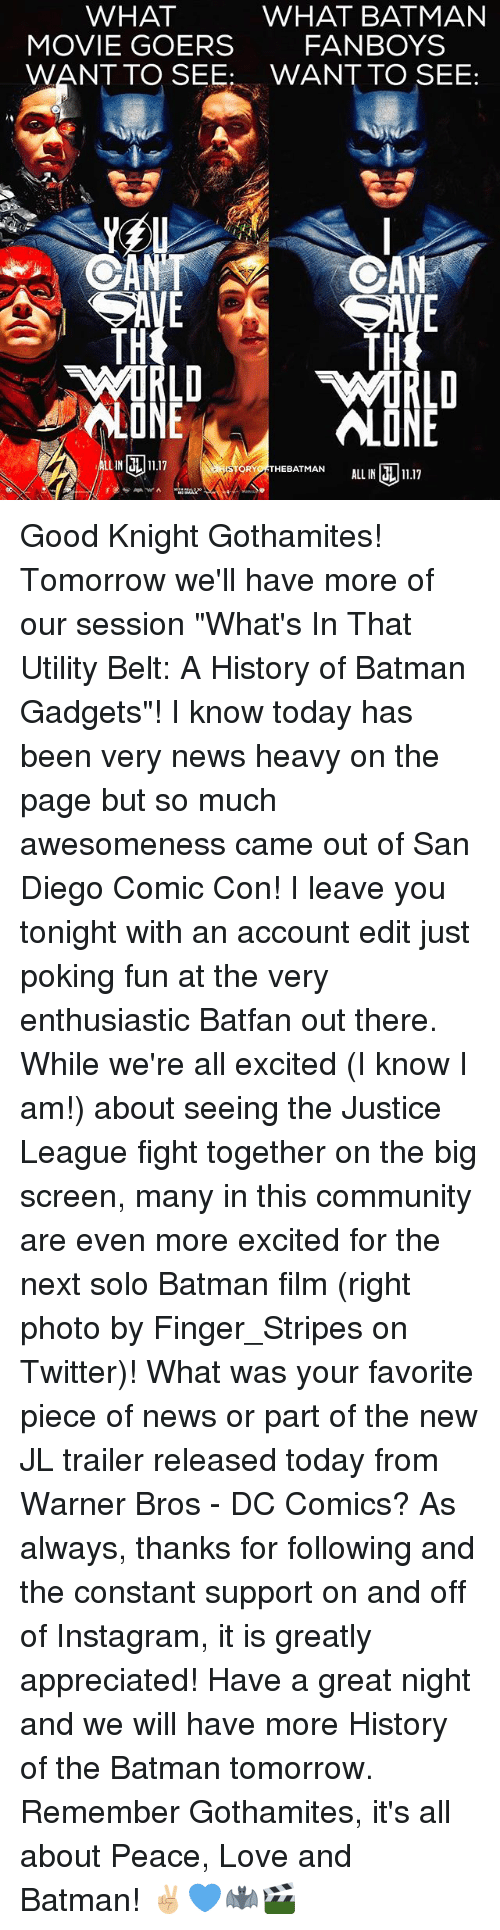 """Being Alone, Batman, and Community: WHAT  WHAT BATMAN  FANBOYS  MOVIE GOERS  WANT TO SEE WANT TO SEE:  AN  TH  RLD  RLD  LUNE  ÜNE  ALONE  LN17  RTHEBATMAN ALL IN11.17  LIN  ALL IN 1.17 Good Knight Gothamites! Tomorrow we'll have more of our session """"What's In That Utility Belt: A History of Batman Gadgets""""! I know today has been very news heavy on the page but so much awesomeness came out of San Diego Comic Con! I leave you tonight with an account edit just poking fun at the very enthusiastic Batfan out there. While we're all excited (I know I am!) about seeing the Justice League fight together on the big screen, many in this community are even more excited for the next solo Batman film (right photo by Finger_Stripes on Twitter)! What was your favorite piece of news or part of the new JL trailer released today from Warner Bros - DC Comics? As always, thanks for following and the constant support on and off of Instagram, it is greatly appreciated! Have a great night and we will have more History of the Batman tomorrow. Remember Gothamites, it's all about Peace, Love and Batman! ✌🏼💙🦇🎬"""